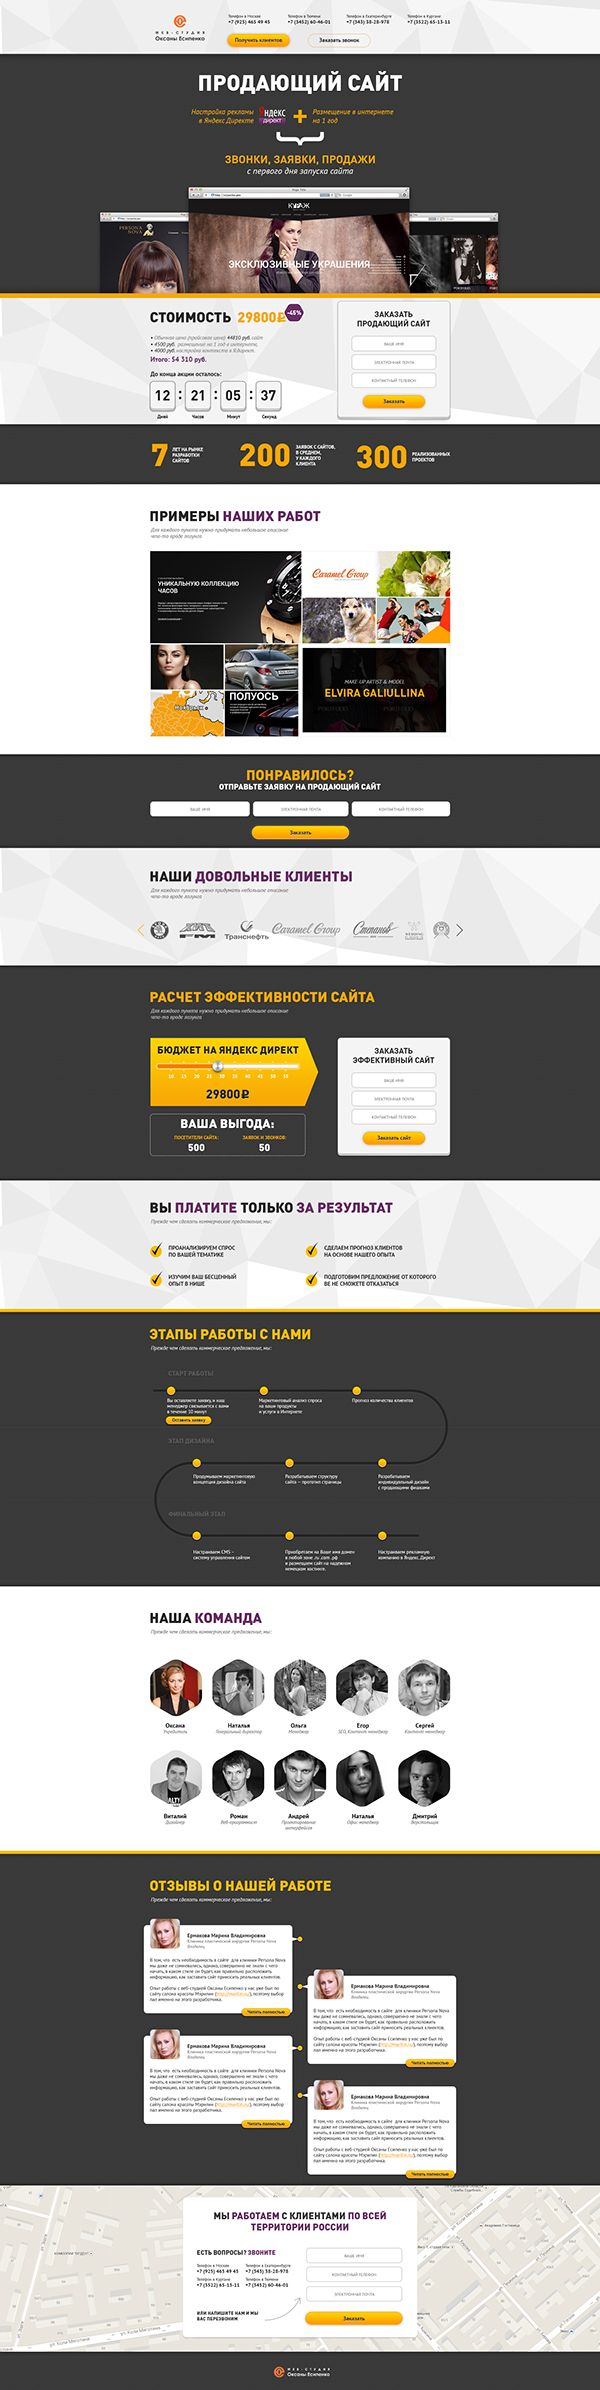 Landing page for Esipenko.pro by Vitaly Shmelev, via Behance